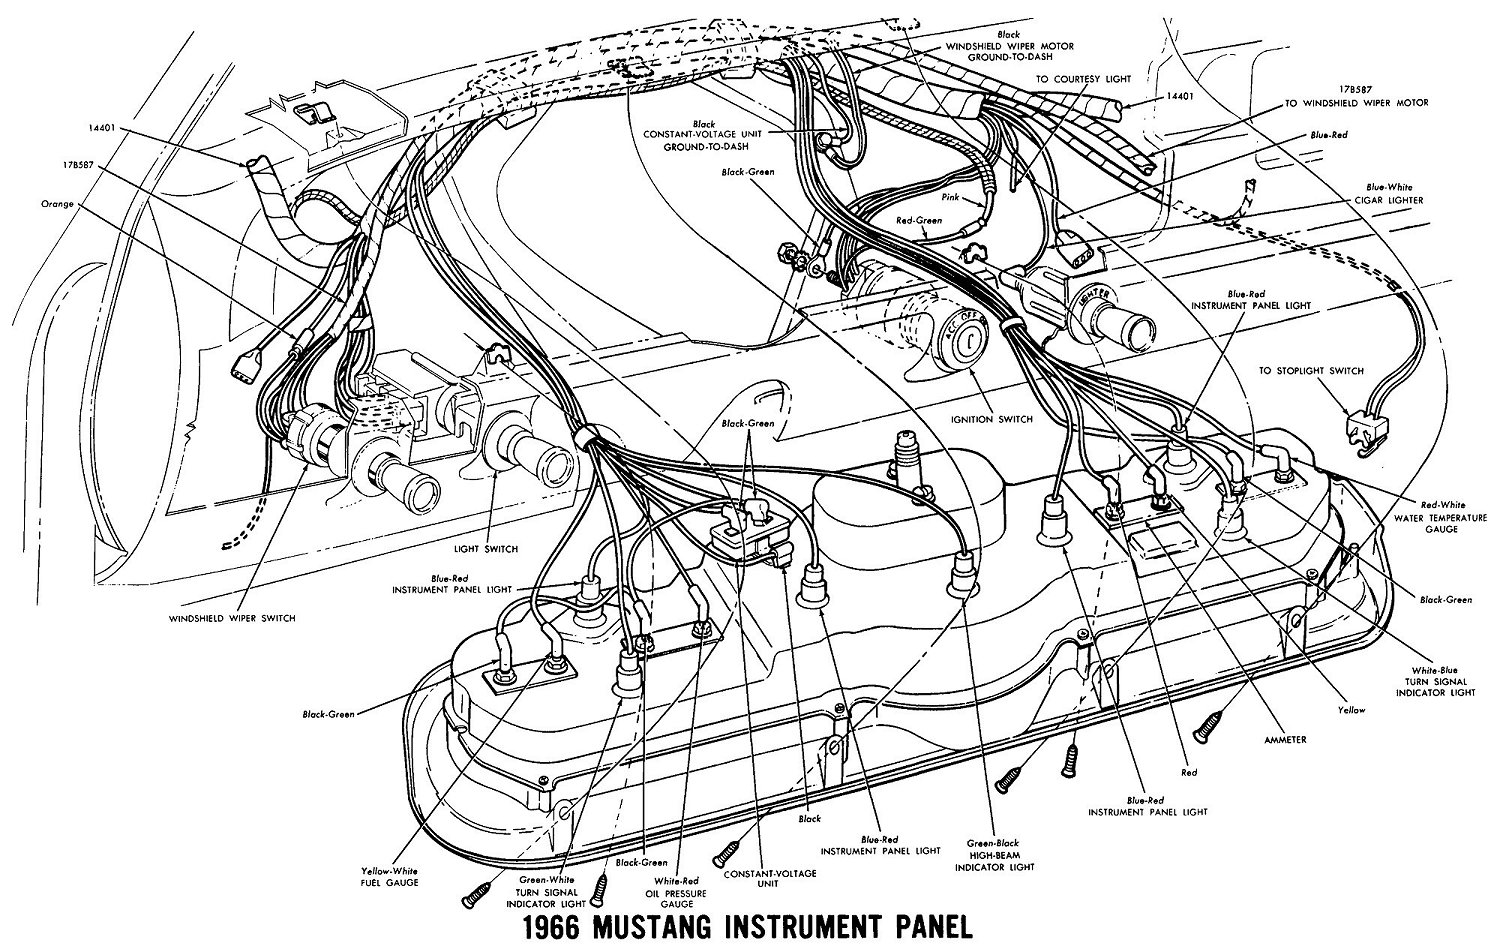 1967 Mustang Wiring And Vacuum Diagrams Average Joe Restoration on 1965 Mustang Emergency Flasher Wiring Diagram